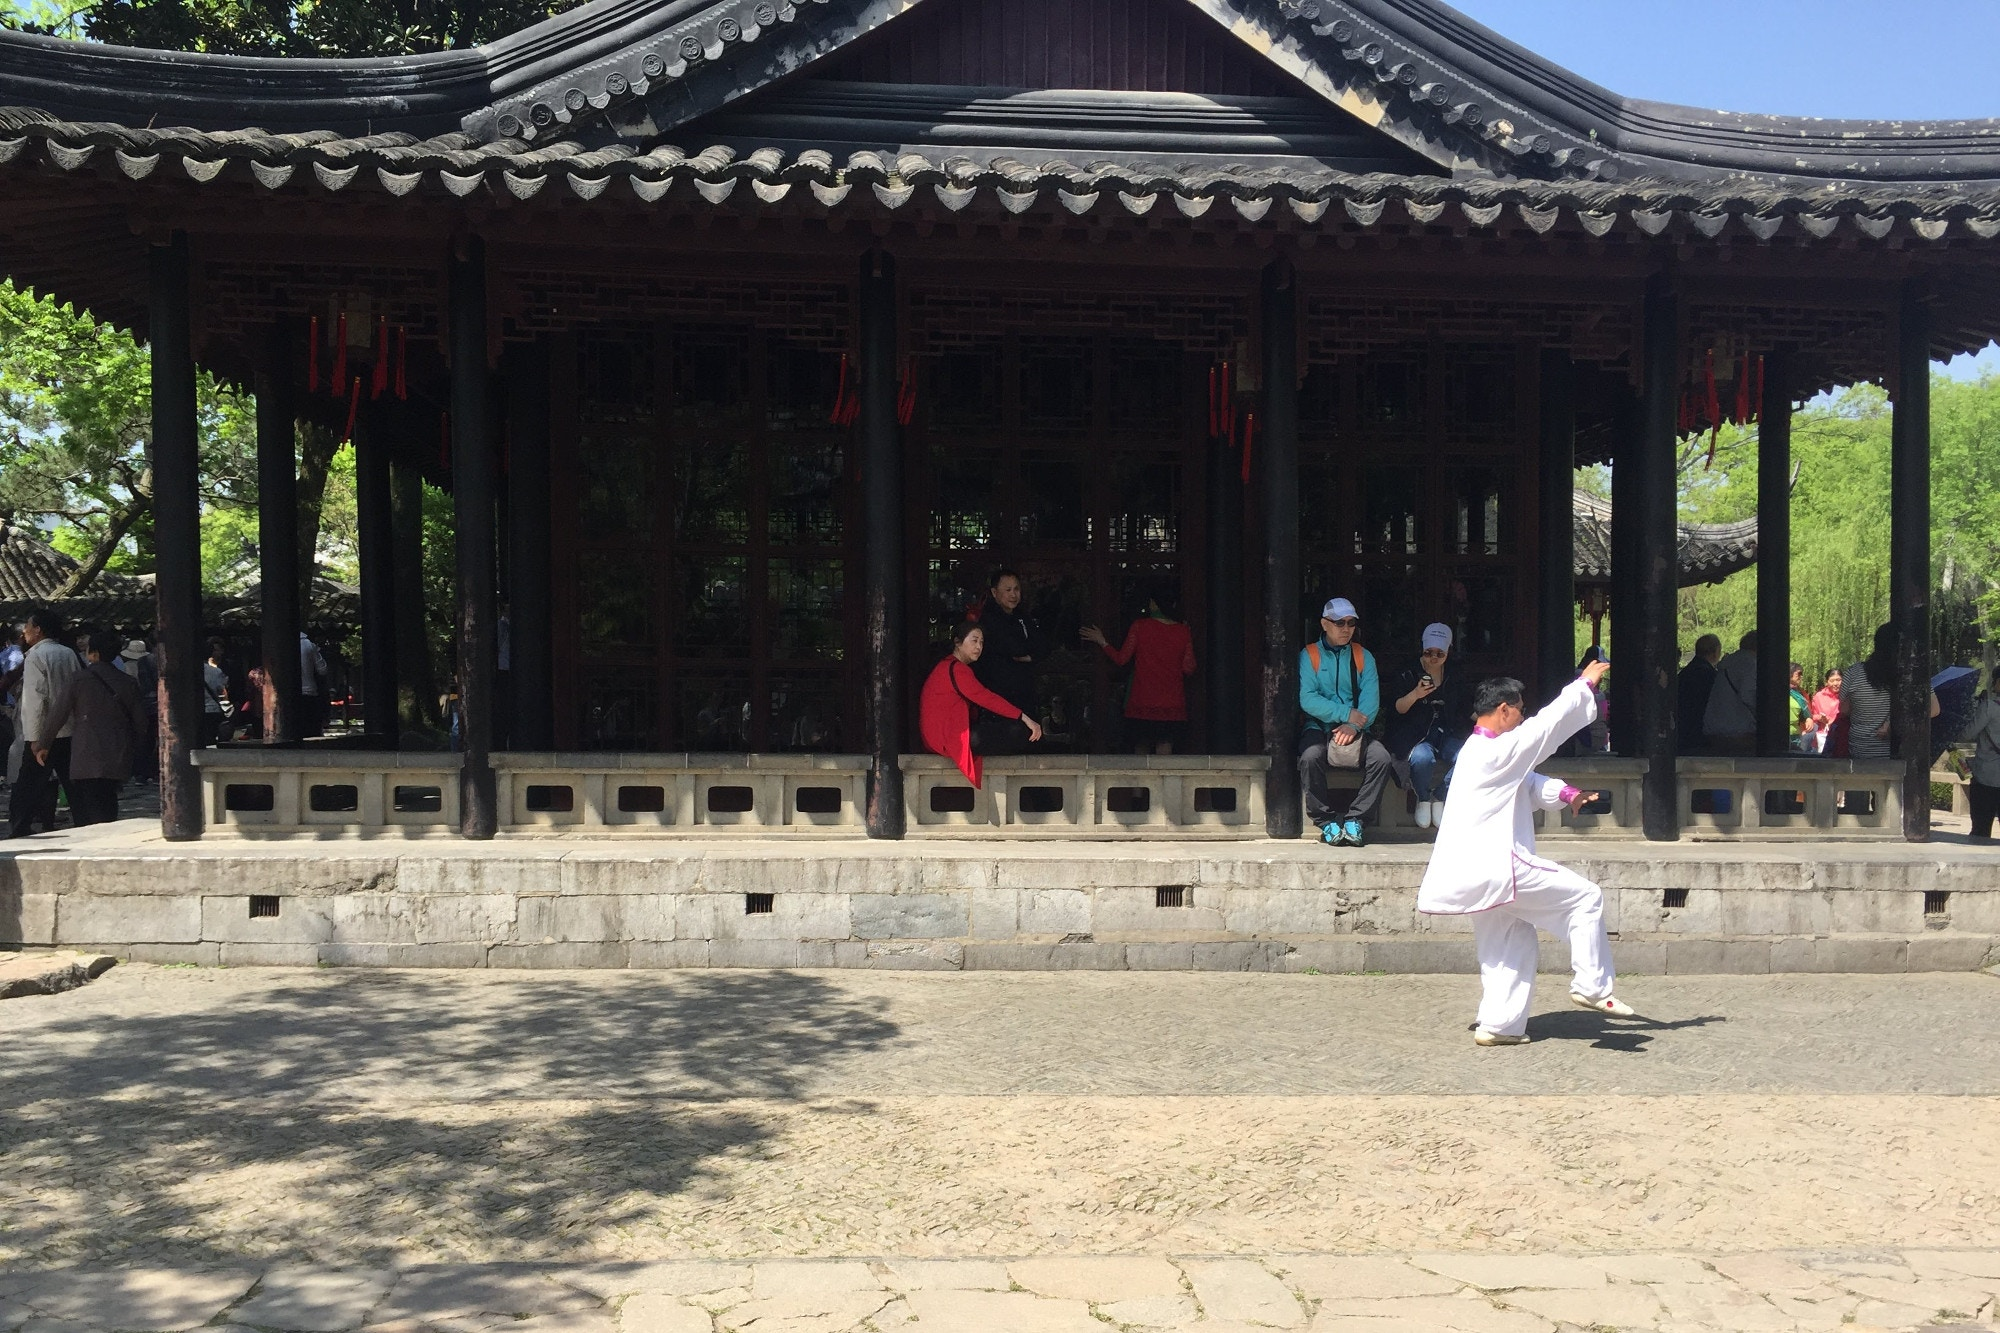 A tai chi master demonstrates the forms in the Humble Administrator's Garden © Megan Eaves